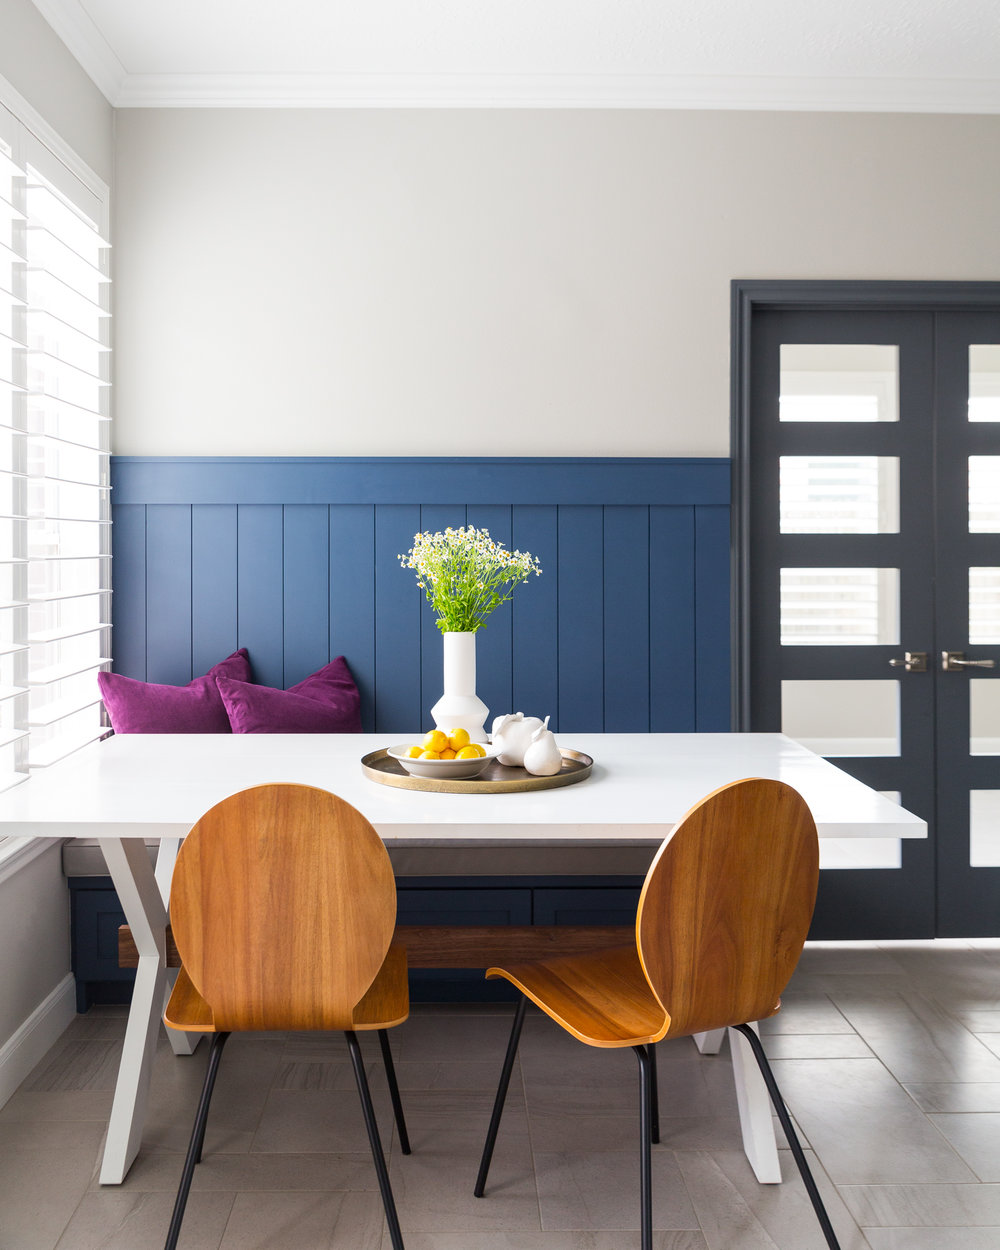 Breakfast Nook Designed by Carla Aston.jpg